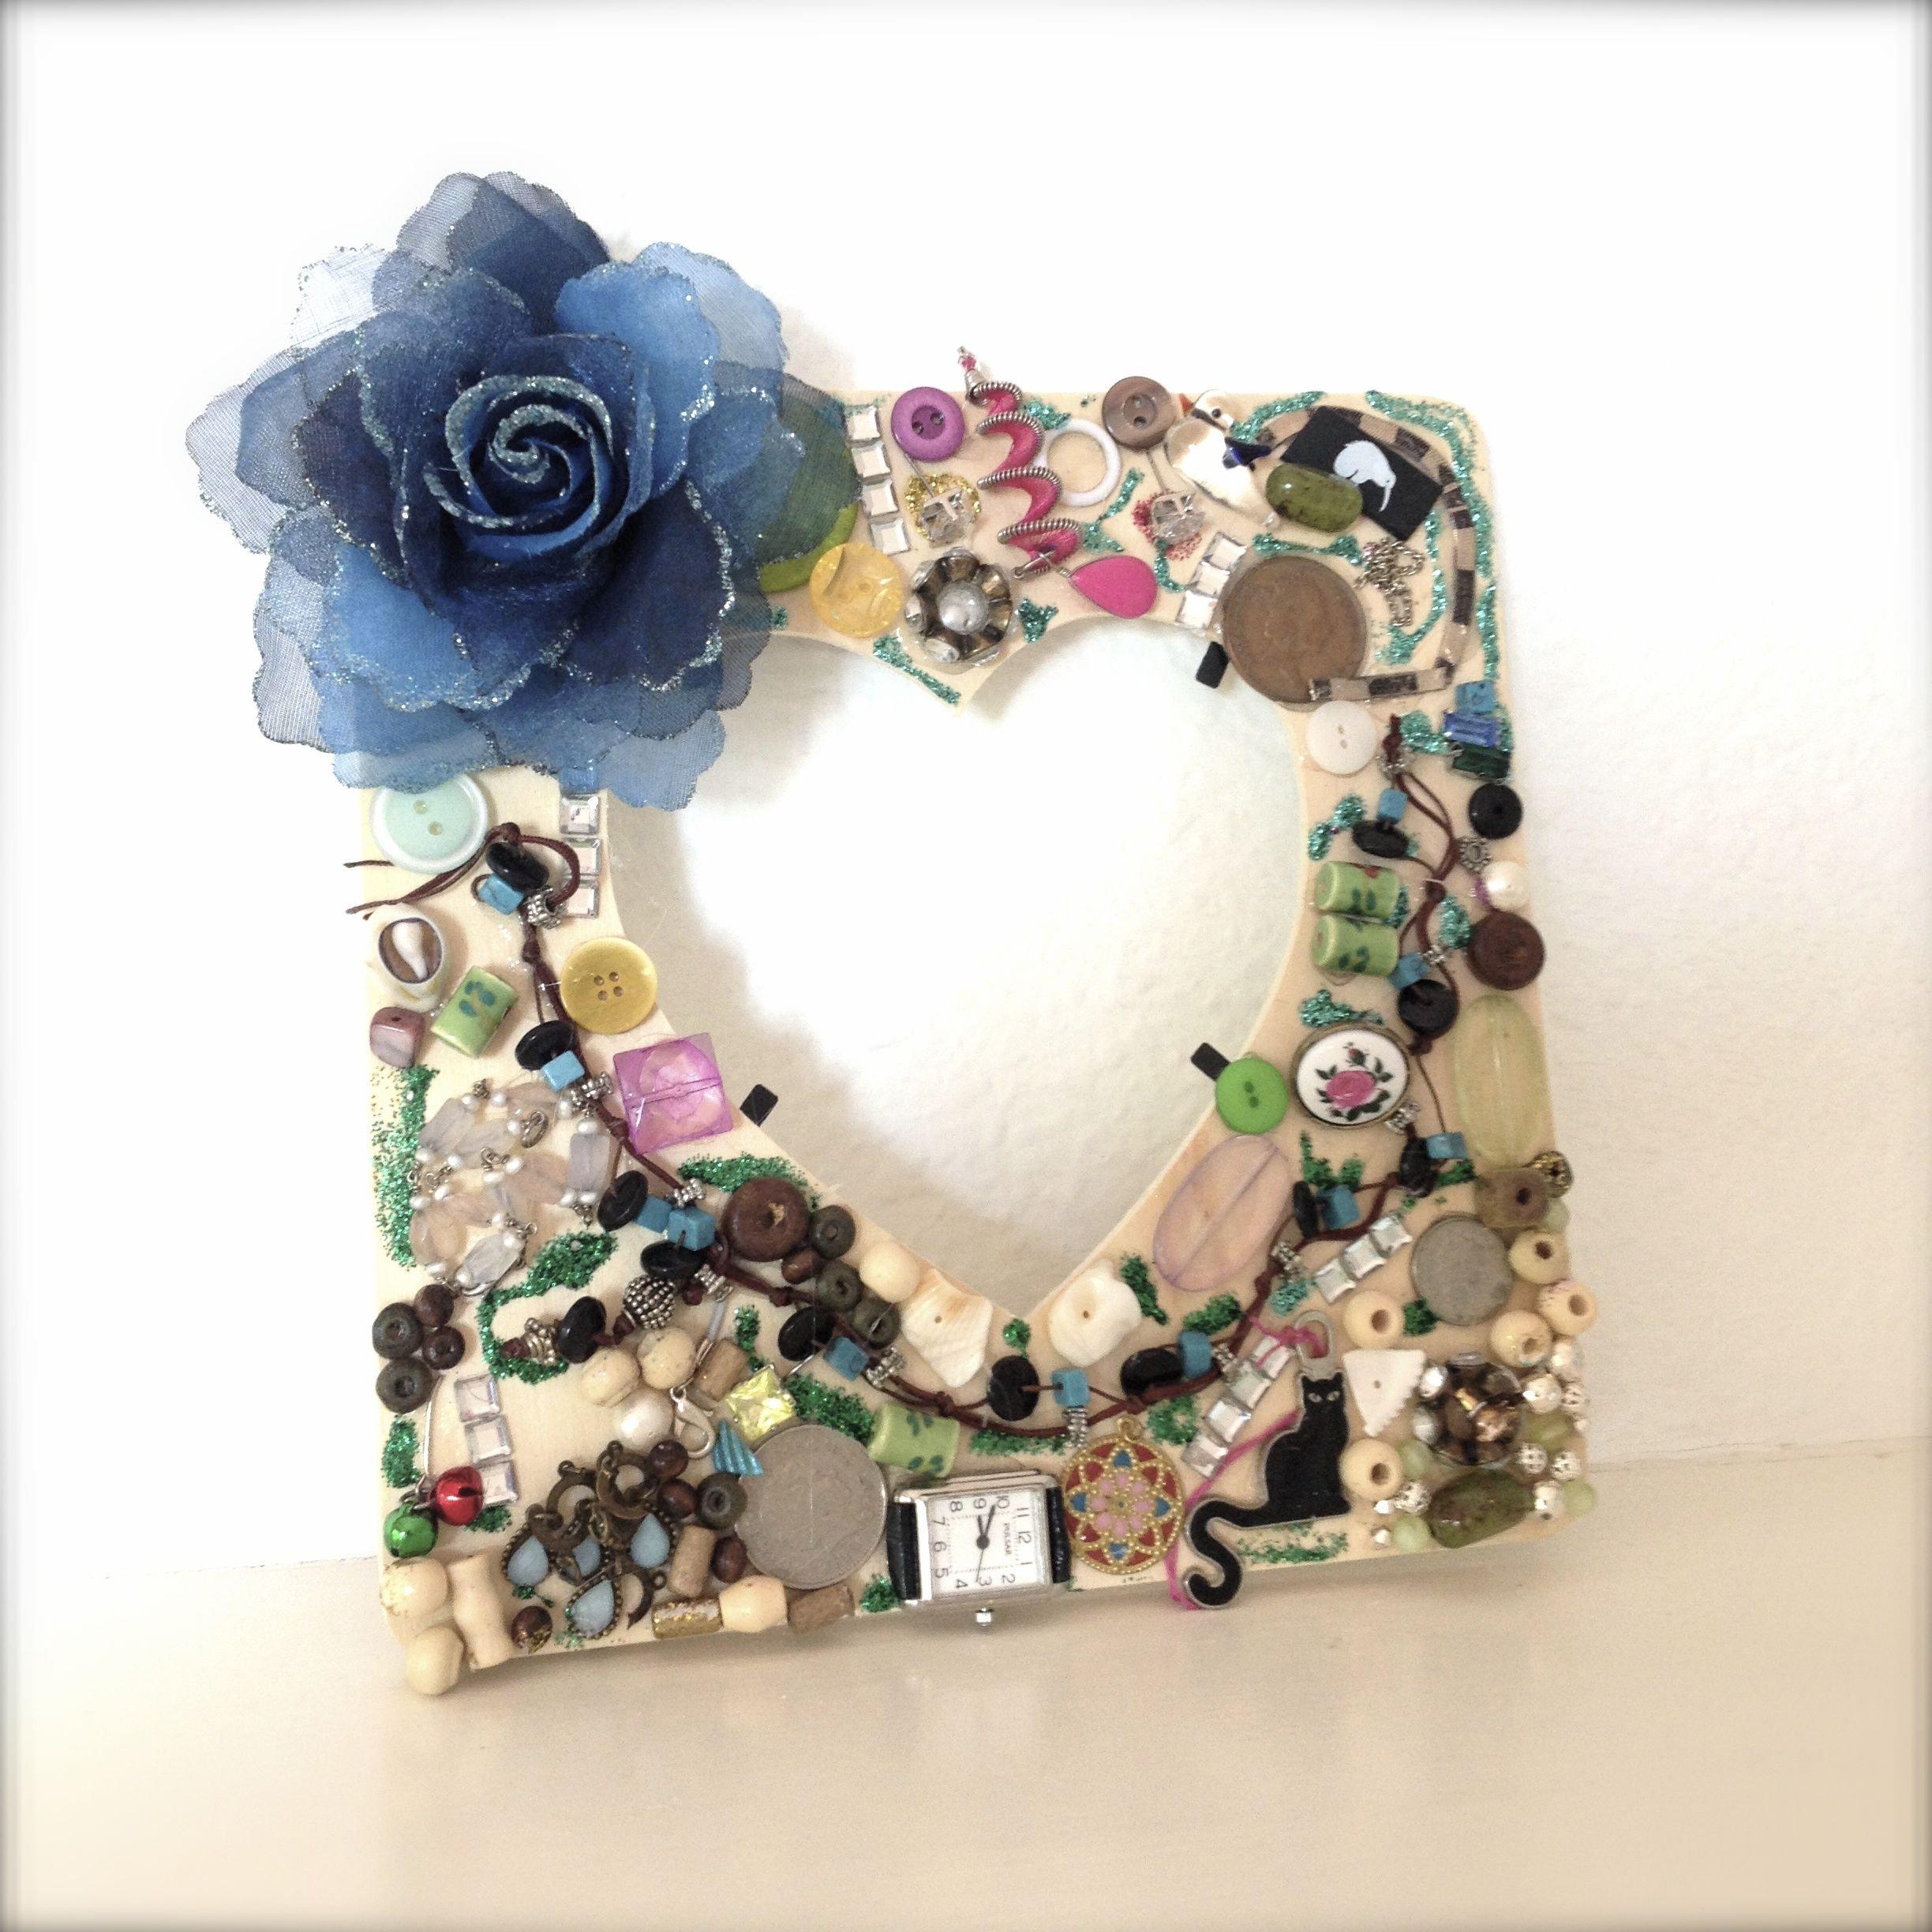 Here's a beautiful frame that I sold. See my entire collection of what's available to buy here: http://www.theautismtrust.com/collections/vendors?q=Billy+Tommey